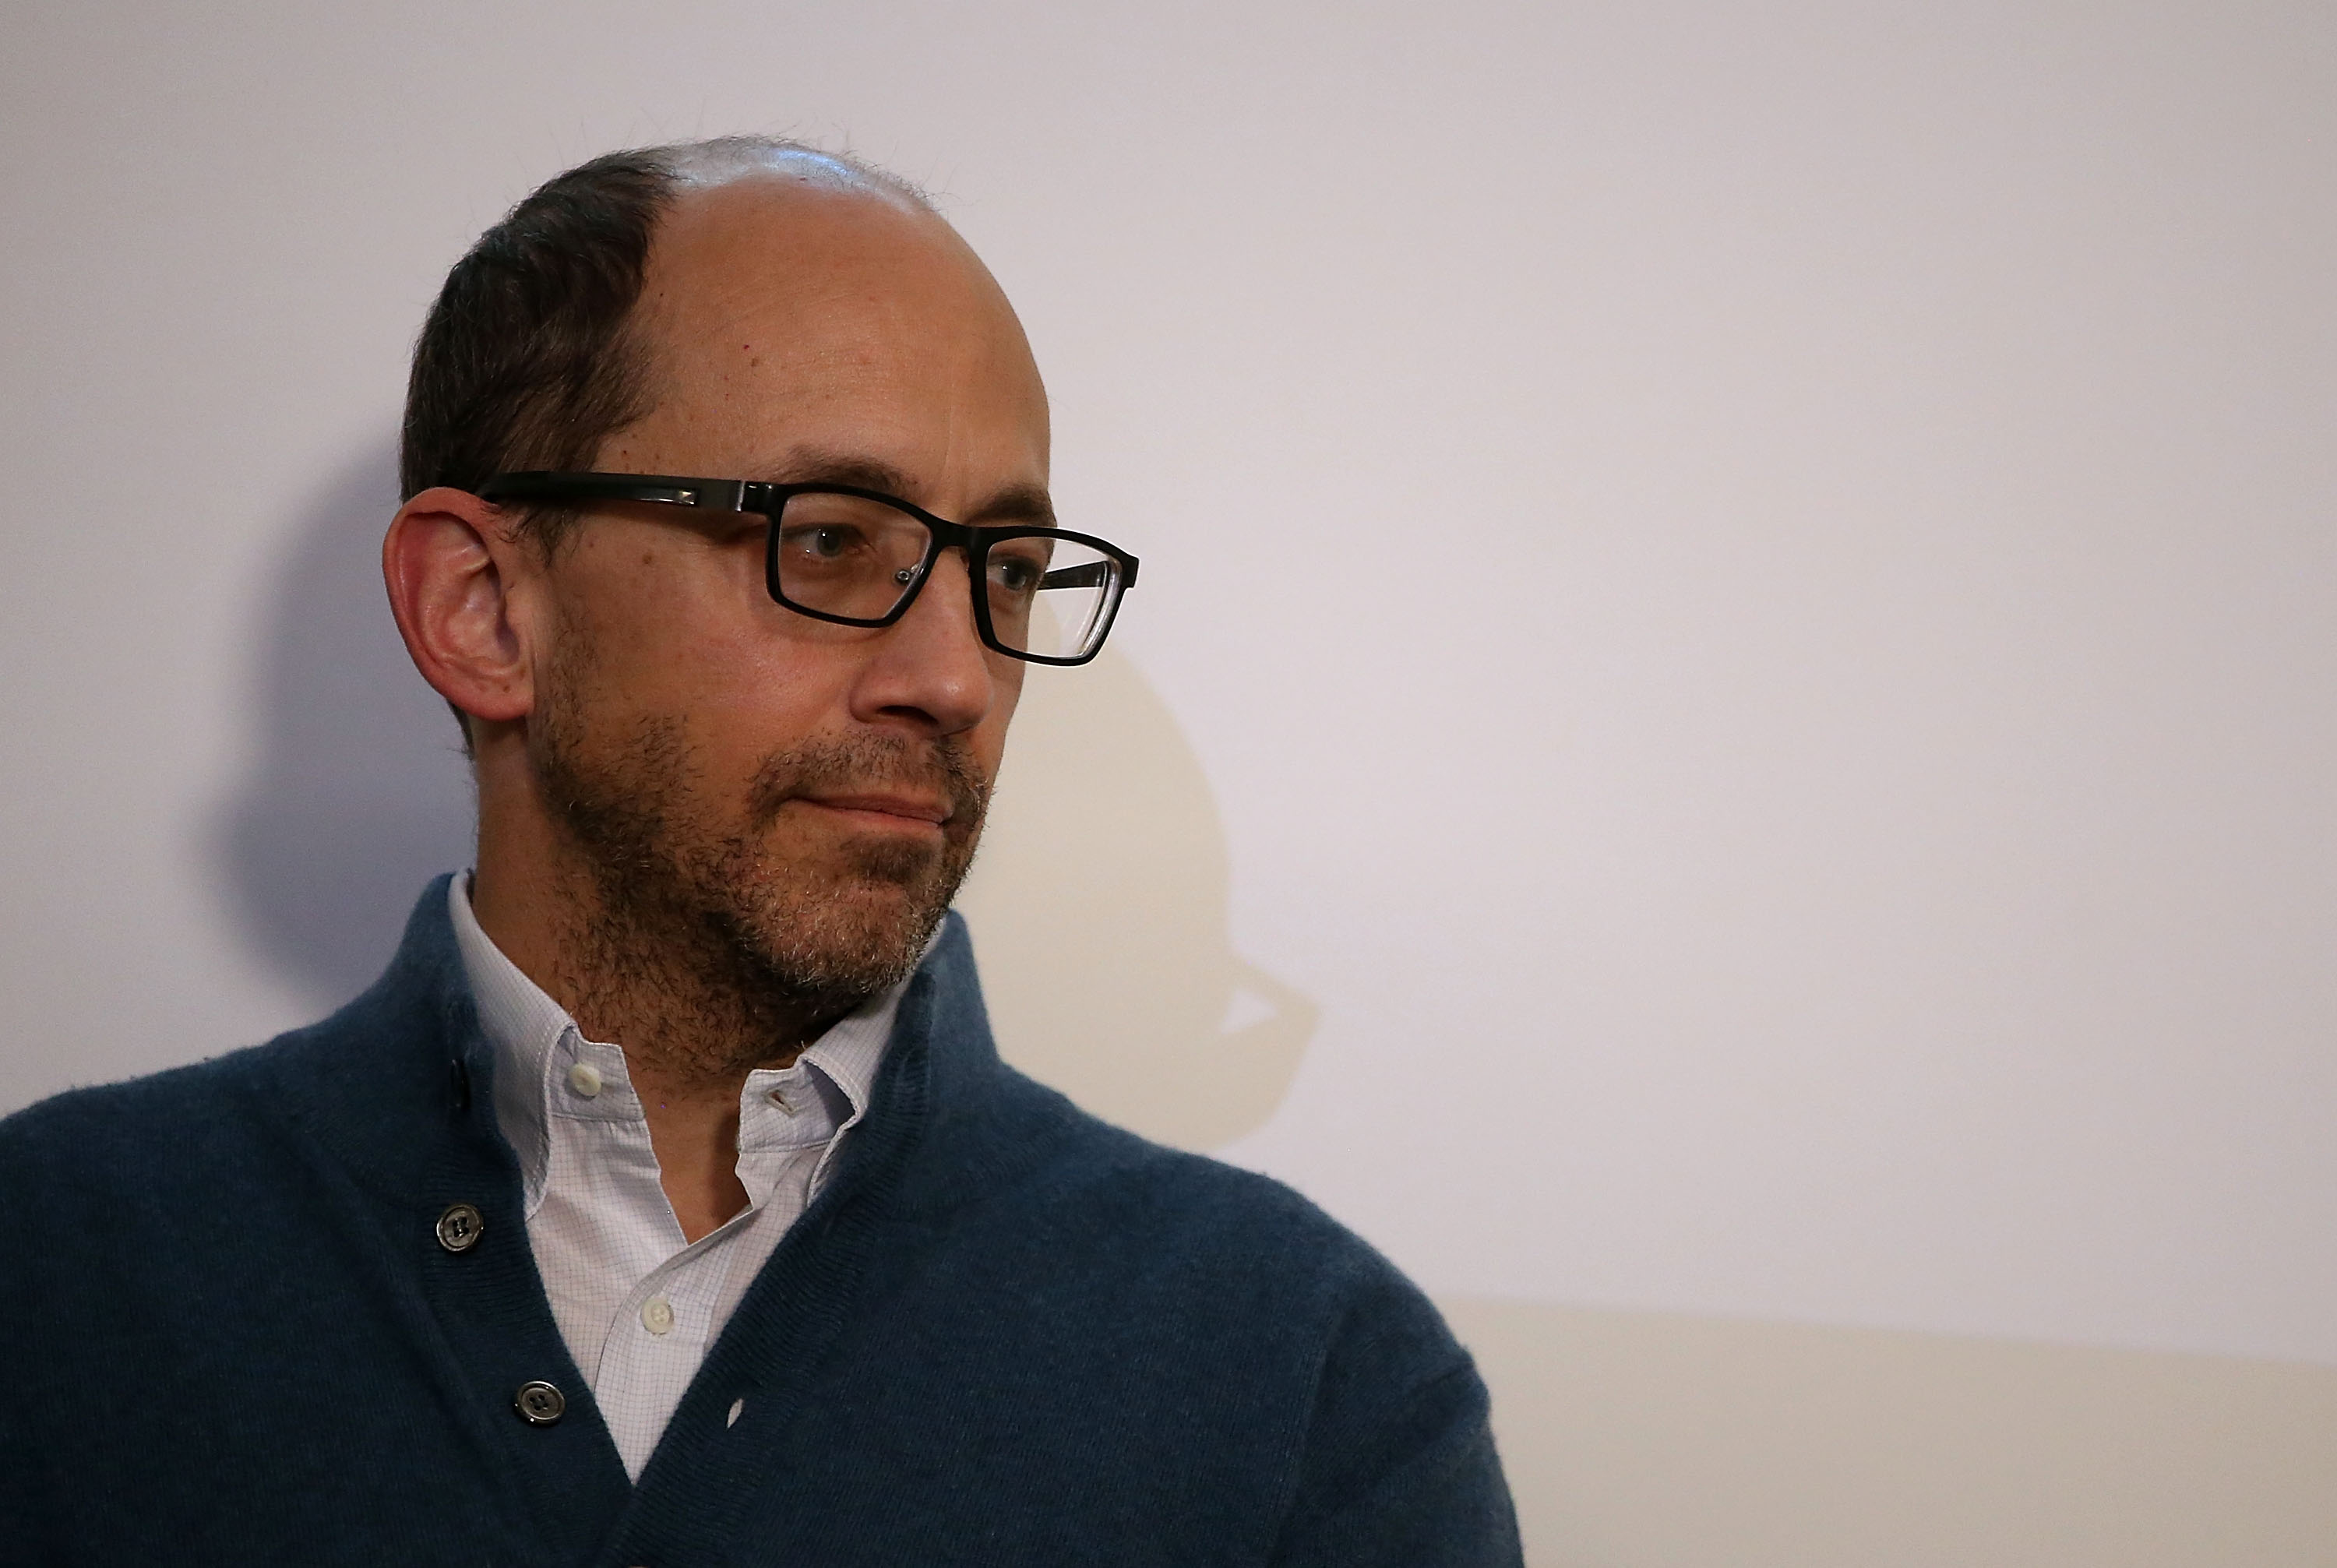 Twitter CEO Dick Costolo And SF Mayor Ed Lee Open New Community Technology Space